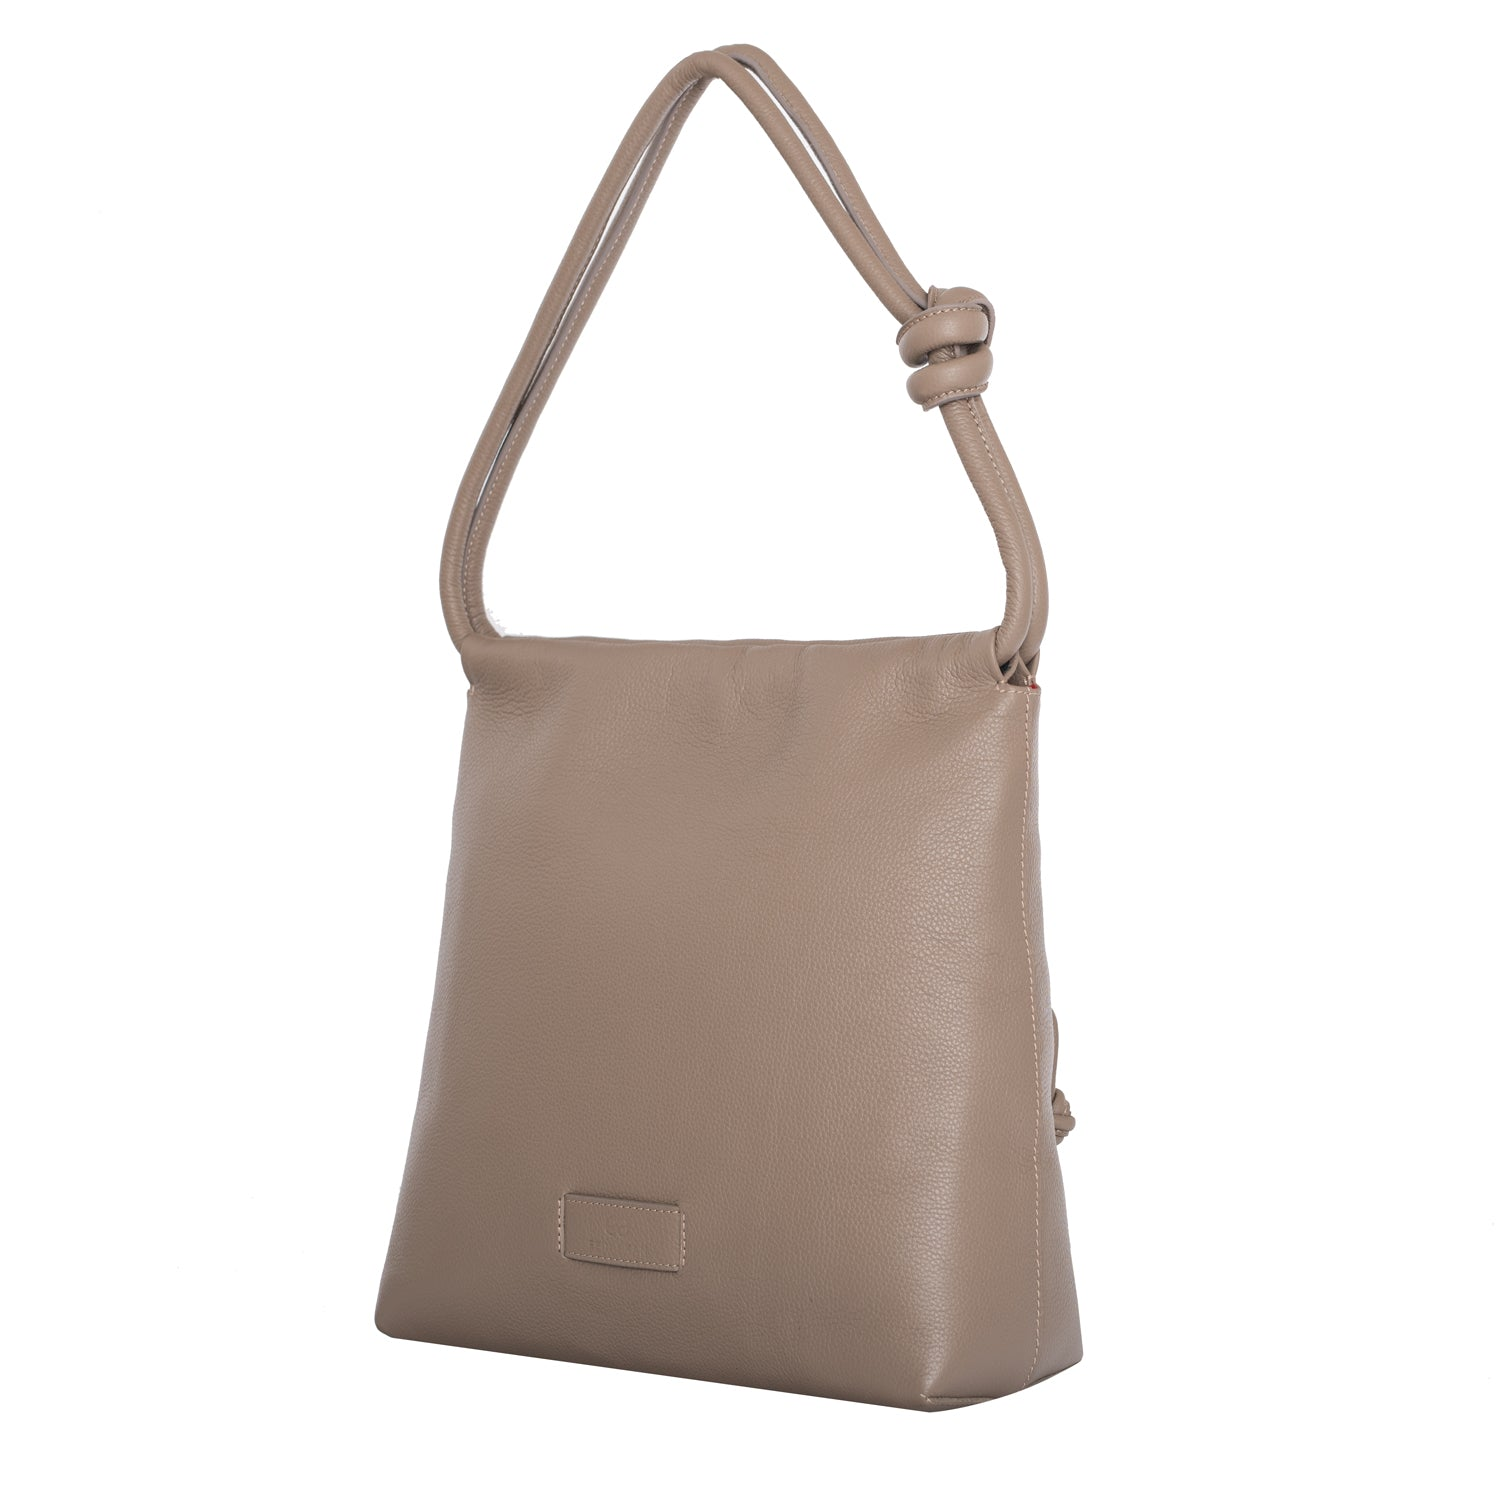 A convertible leather nude shoulder bag for women with a knot detail on the strap that could be used as a clutch bag with its roll down feature, side image.